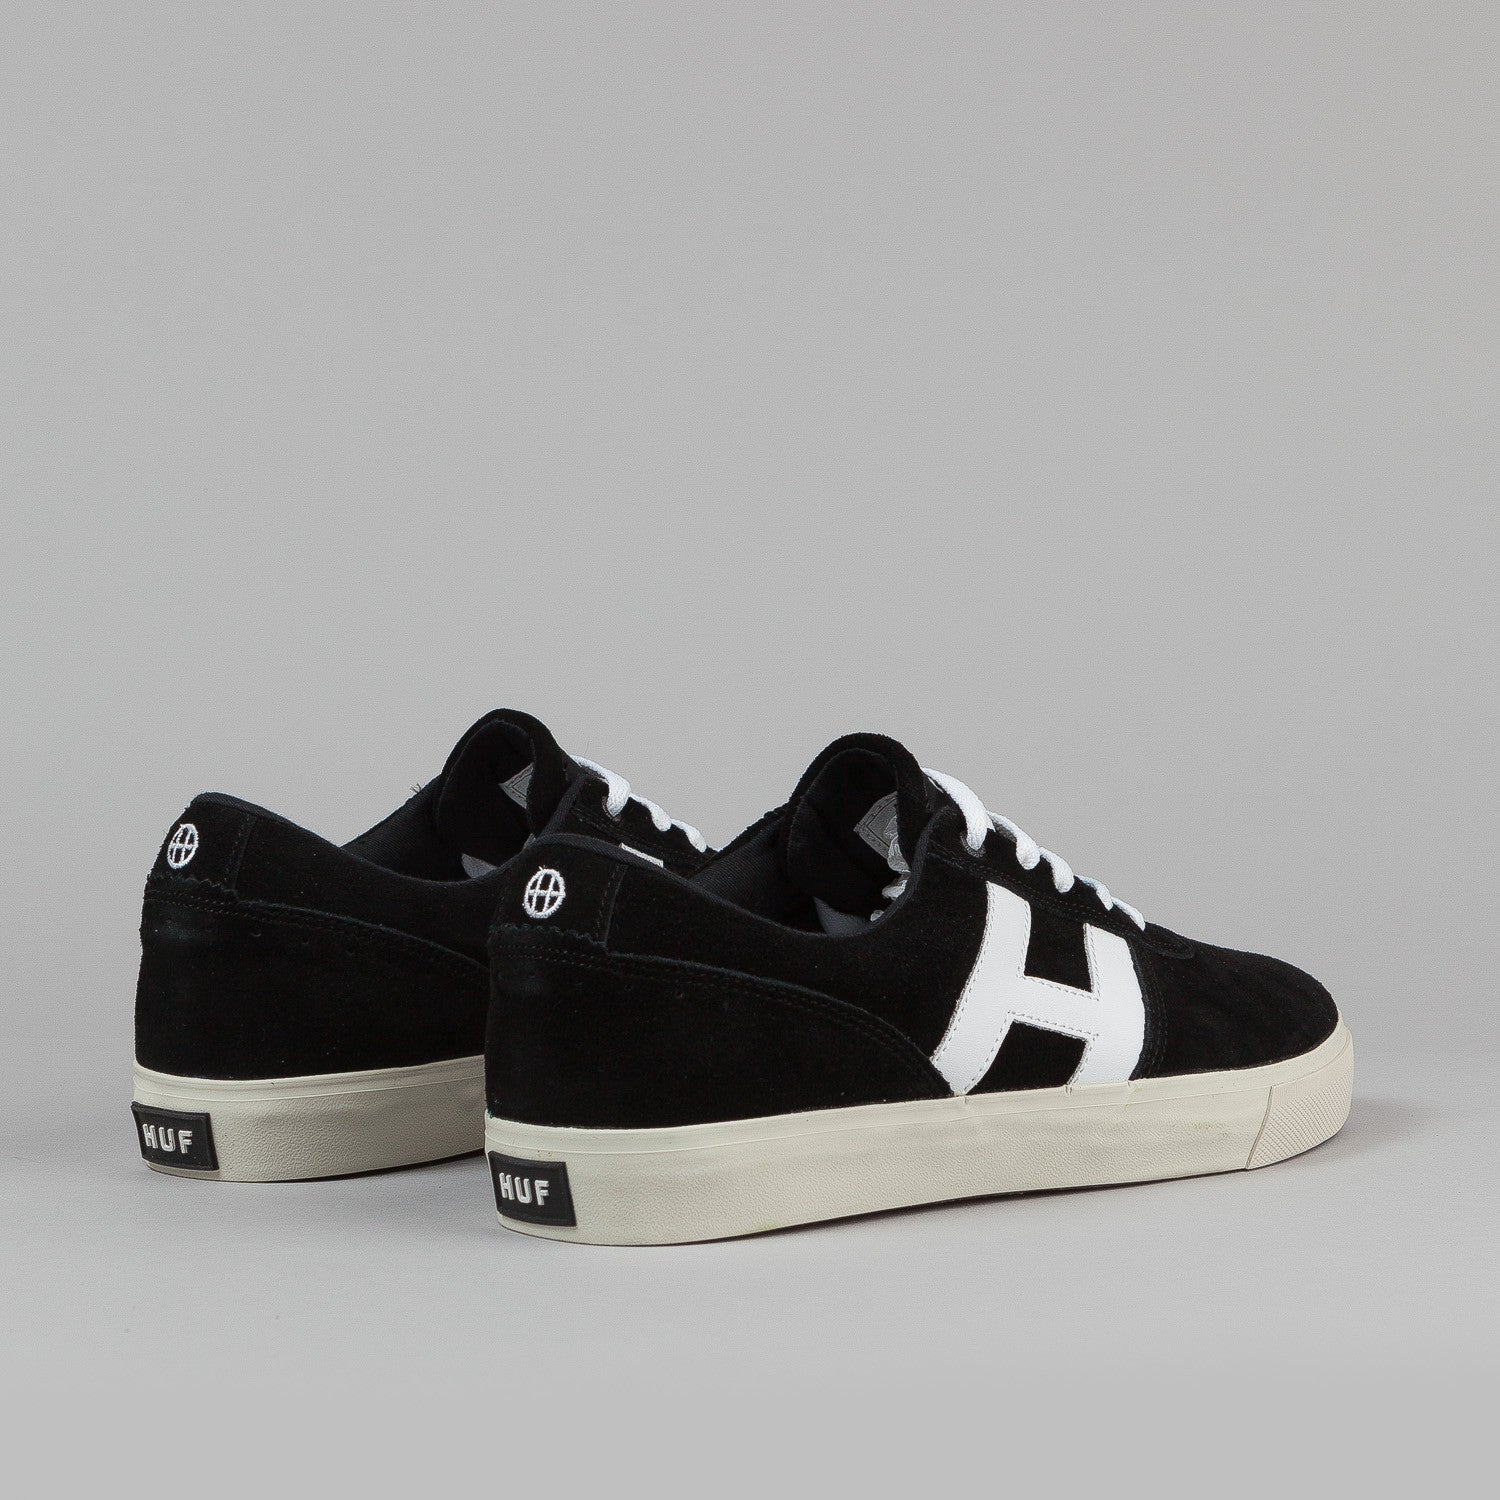 HUF Choice Shoes - Black / Cream